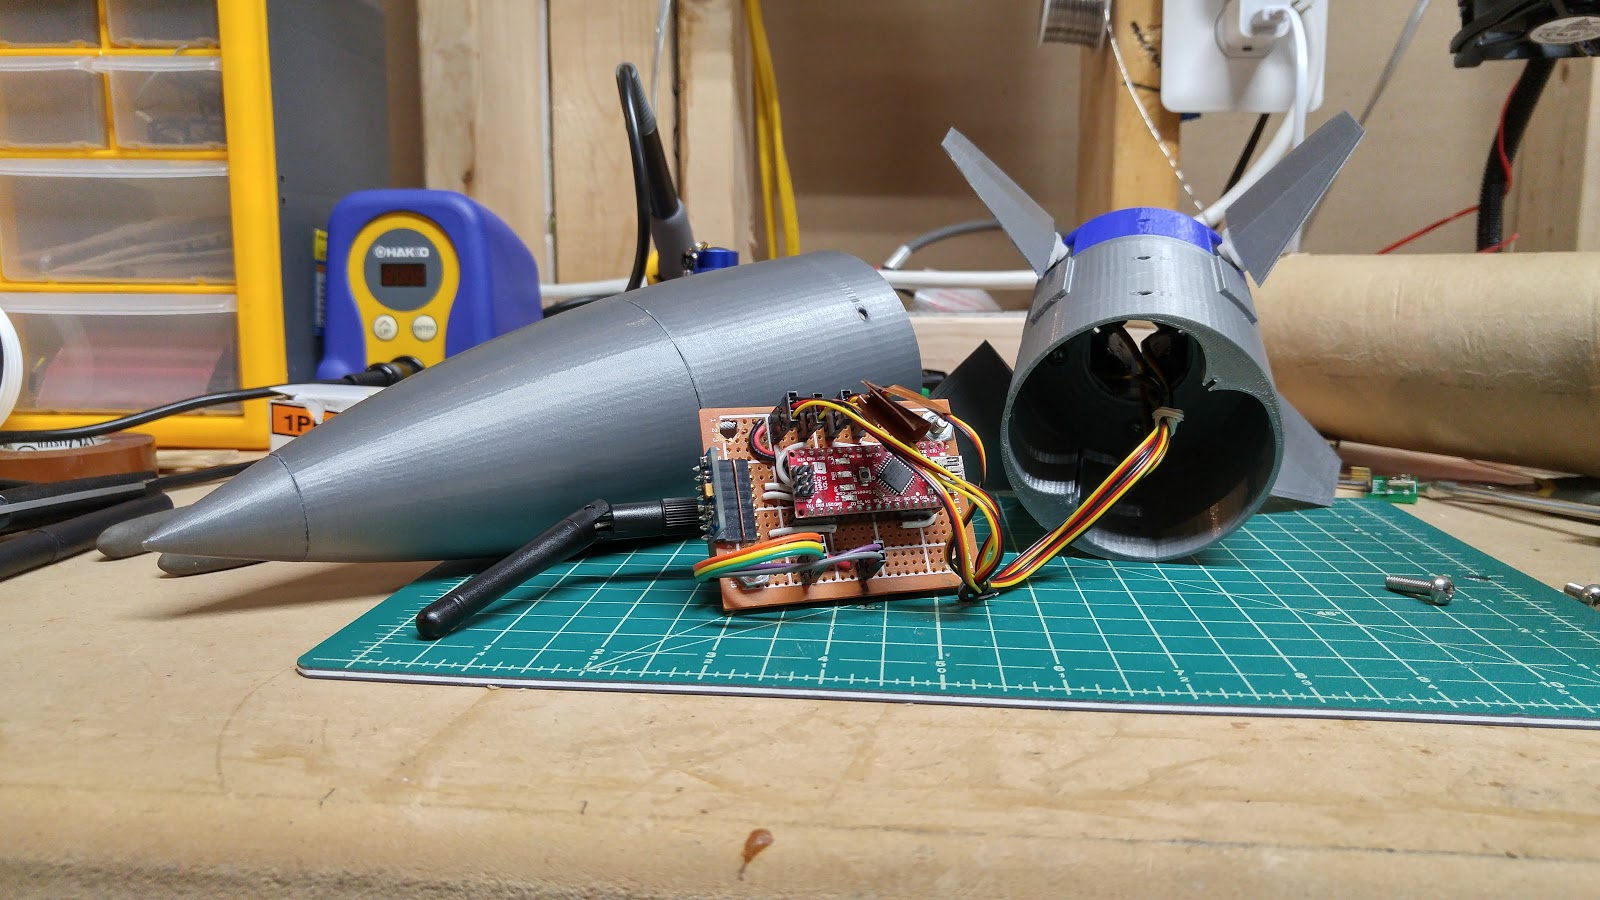 Arduino Rocket Stabilization System Ud 7 14 17 Flying Hobby Sharing Agic Print Printing Circuit Boards With Realized To My Dismayand Likely Yours That I Will Be Unable Open Source This Guidance Project Due Itar And Being Classified As